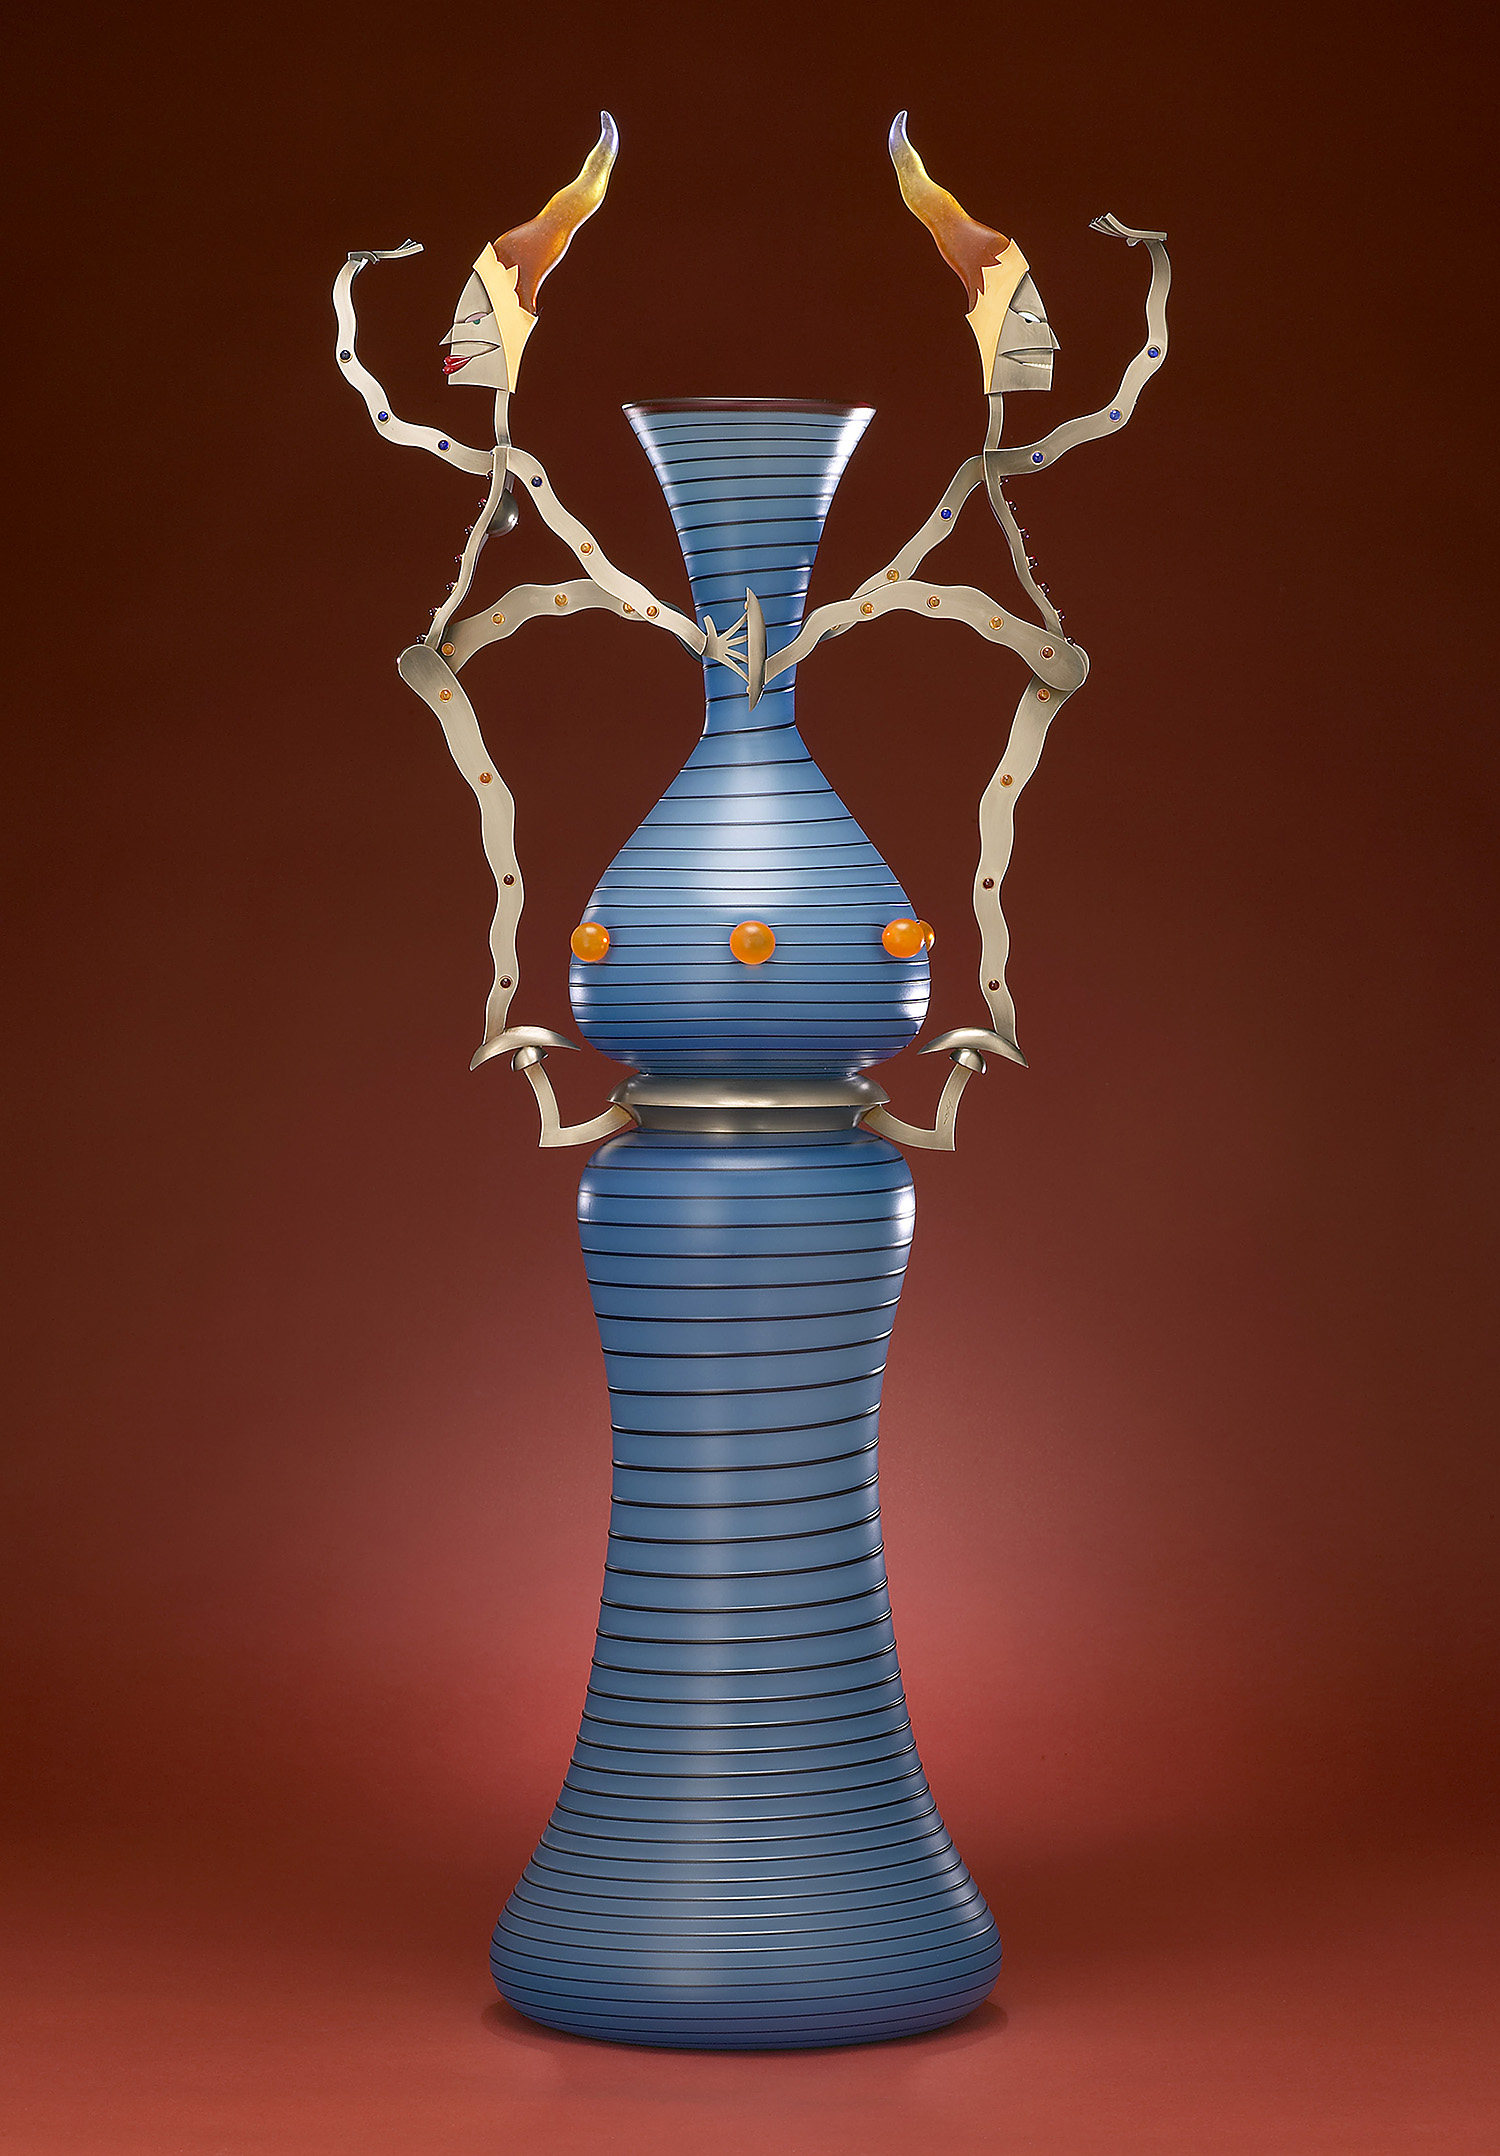 Slippery   2003. Blown glass, nickel and gold-plated bronze, pate de verre, Vitrolite. 36 x 16 x 9½""